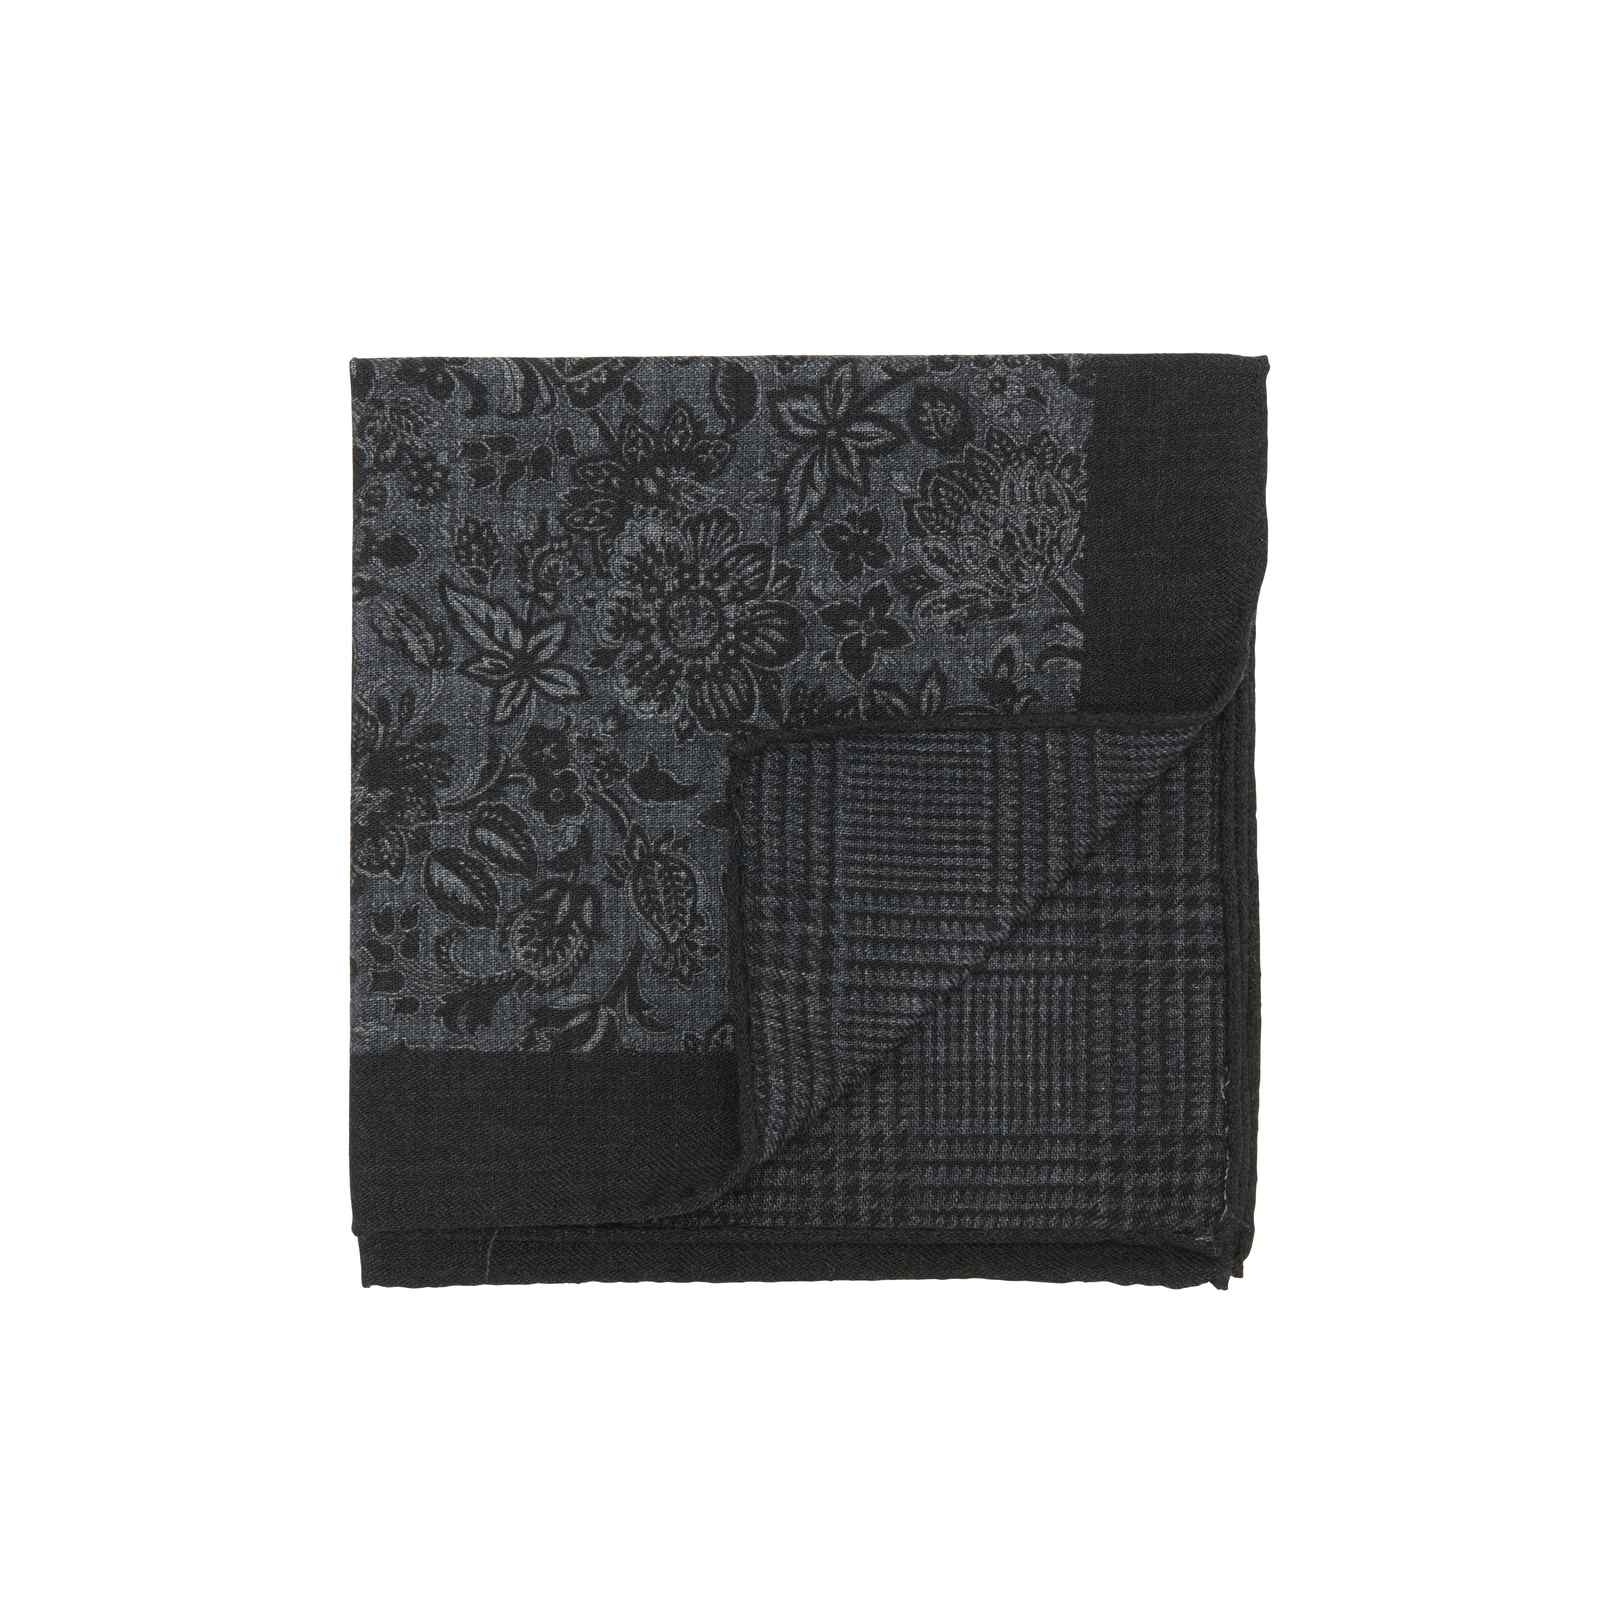 Black and Grey Double Sided Floral and Glencheck Pocket Square